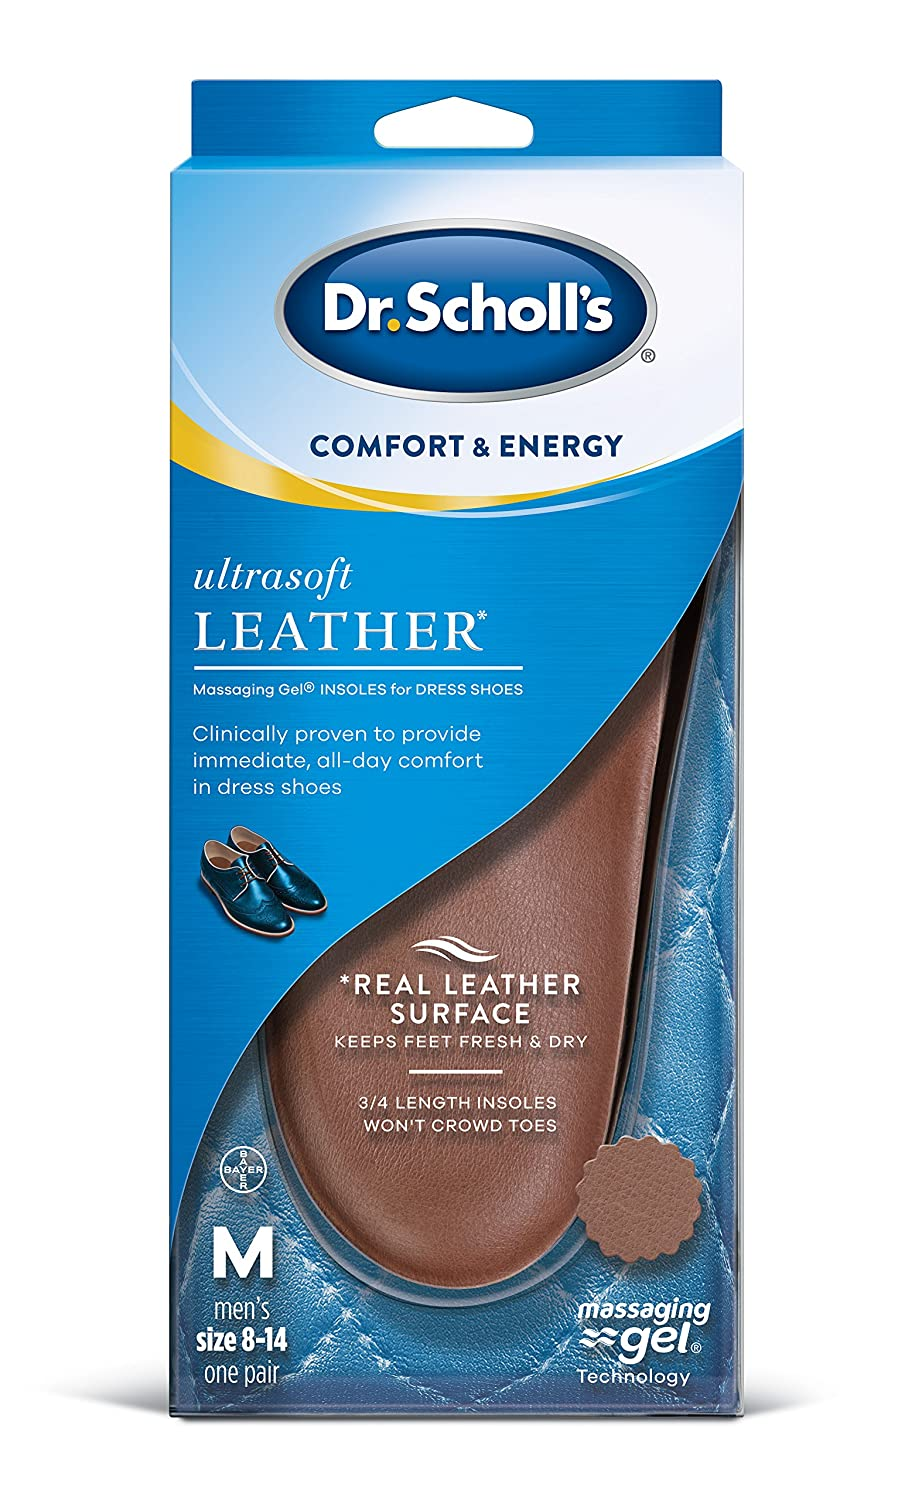 a090ad936c7 Amazon.com  Dr. Scholl s Ultrasoft Leather Insoles for Dress Shoes (Men s  8-14)    All-Day Comfort with Massaging Gel plus a Real Leather Surface   Health ...